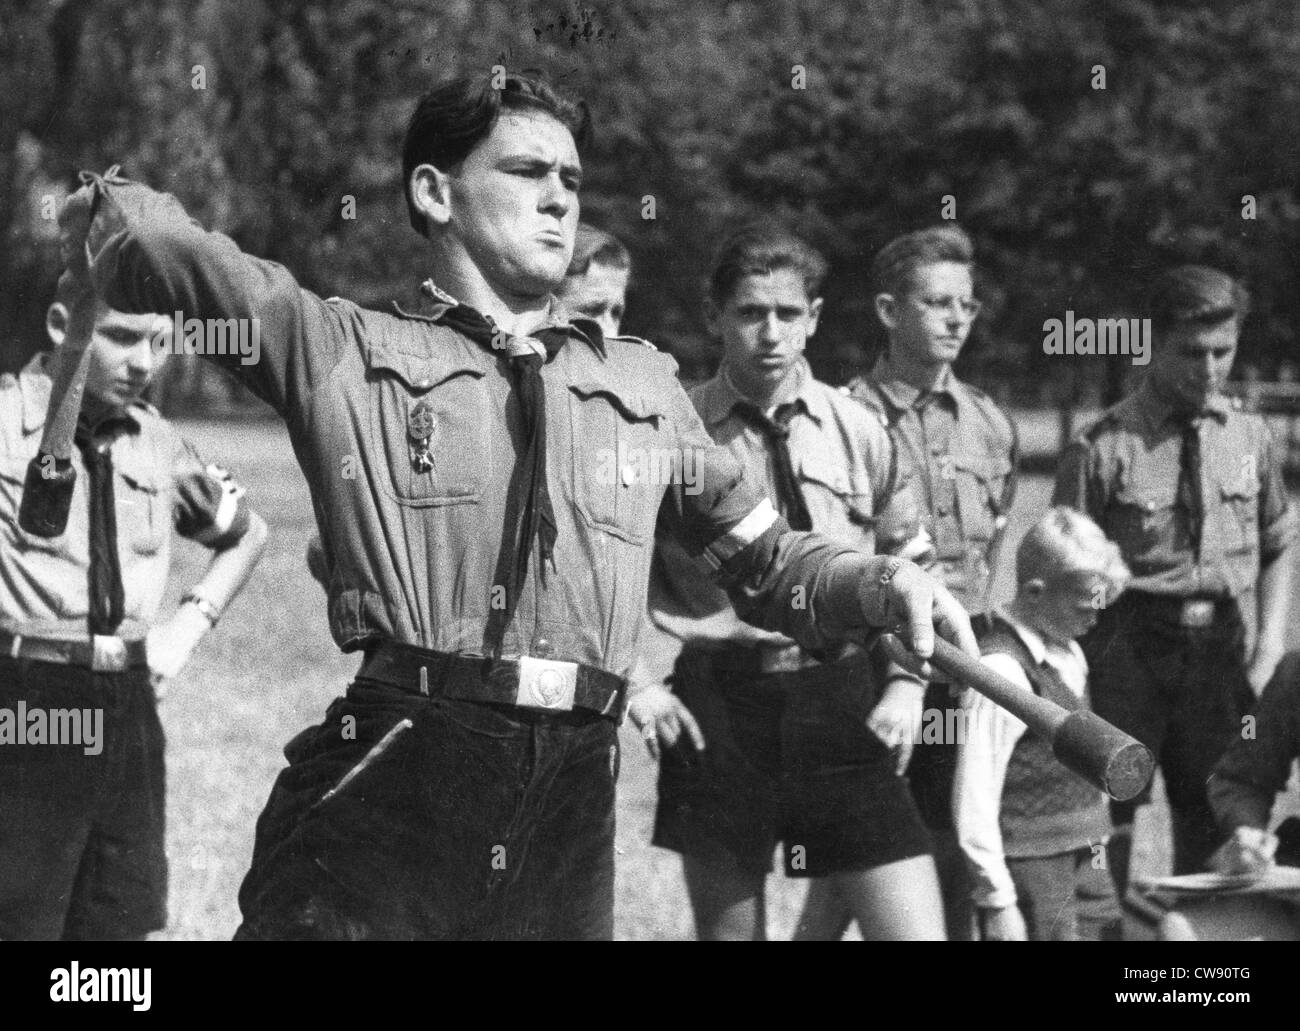 hitler and hitler youth On september 1st, 1939, hitler's armies invaded poland six years of war would  follow with the full participation of the hitler youth eventually down to the.